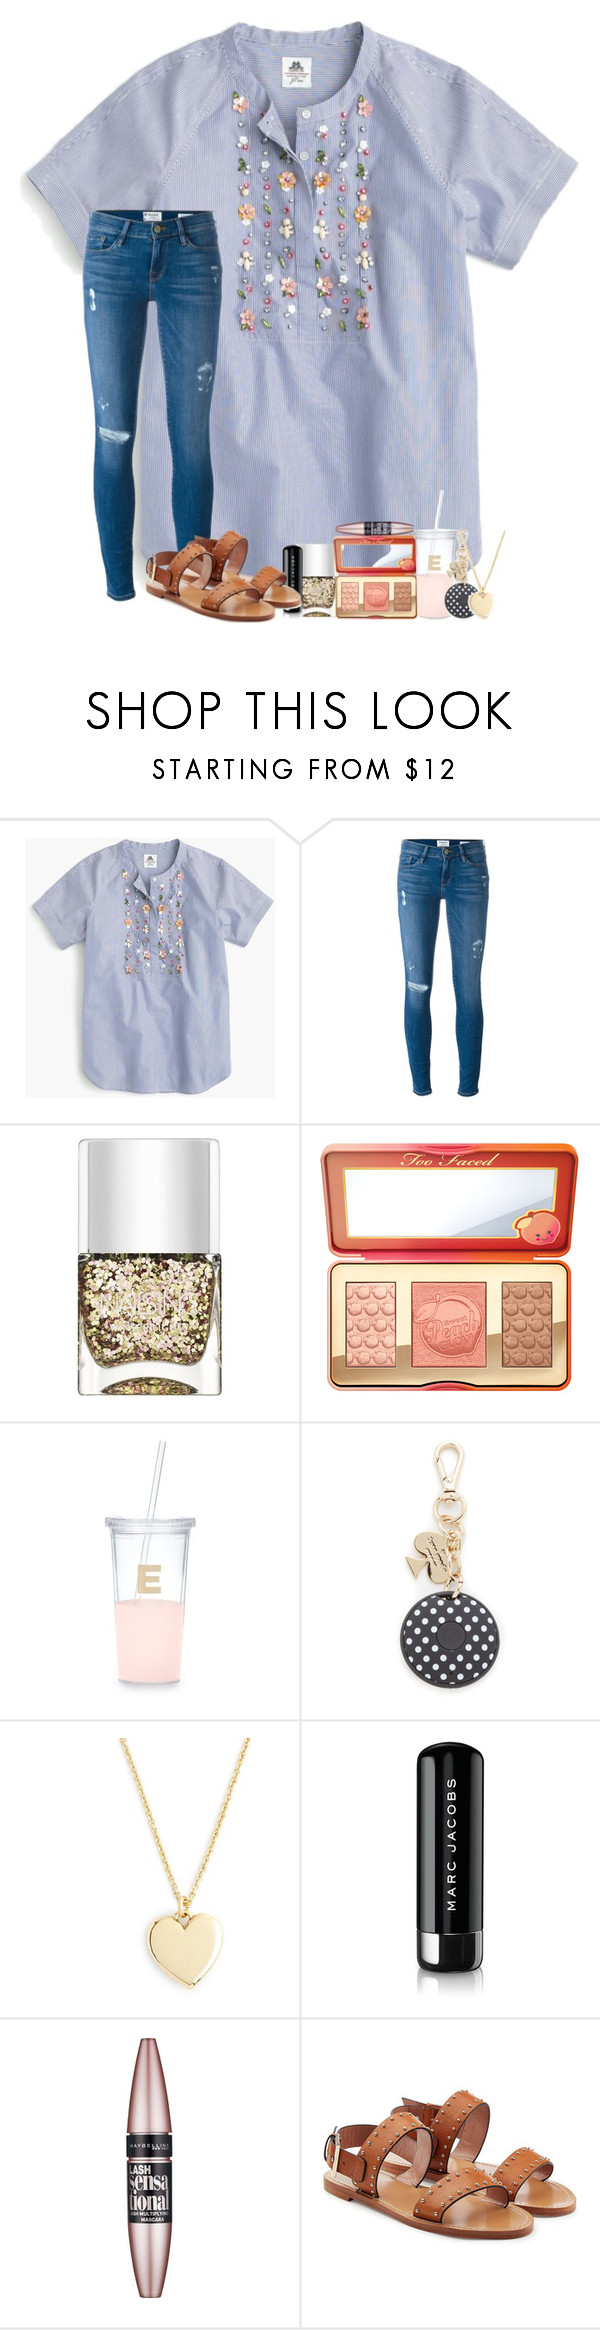 """""""love is such an incredible feeling on such an incredible day"""" by legitmaddywill ❤ liked on Polyvore featuring Thomas Mason, Frame, Nails Inc., Kate Spade, J.Crew, Marc Jacobs, Maybelline and RED Valentino"""